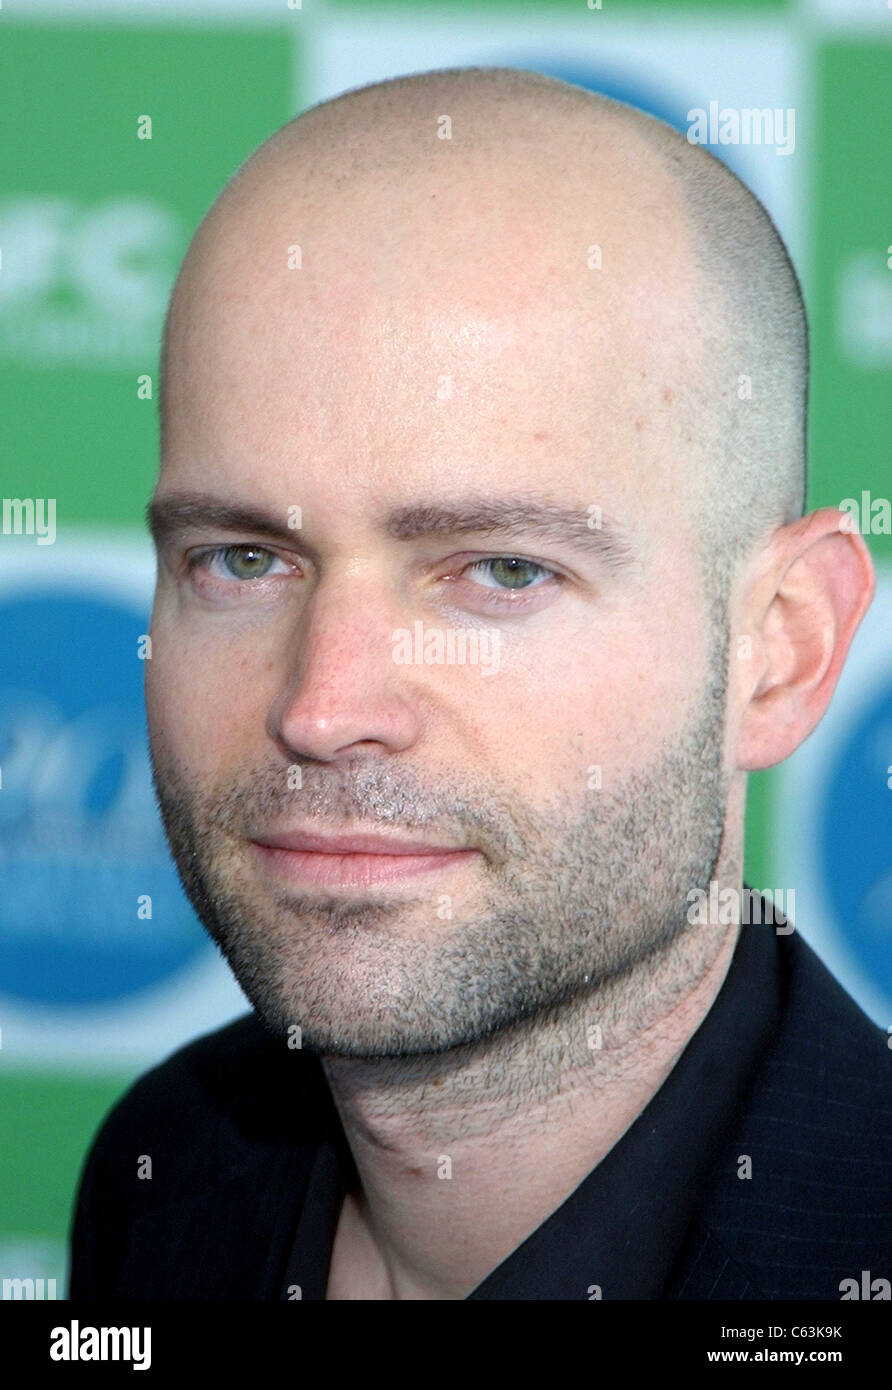 Marc Forster at arrivals for 20th IFP Independent Spirit Awards, Los Angeles, CA, Saturday, February 26, 2005. Photo - Stock Image